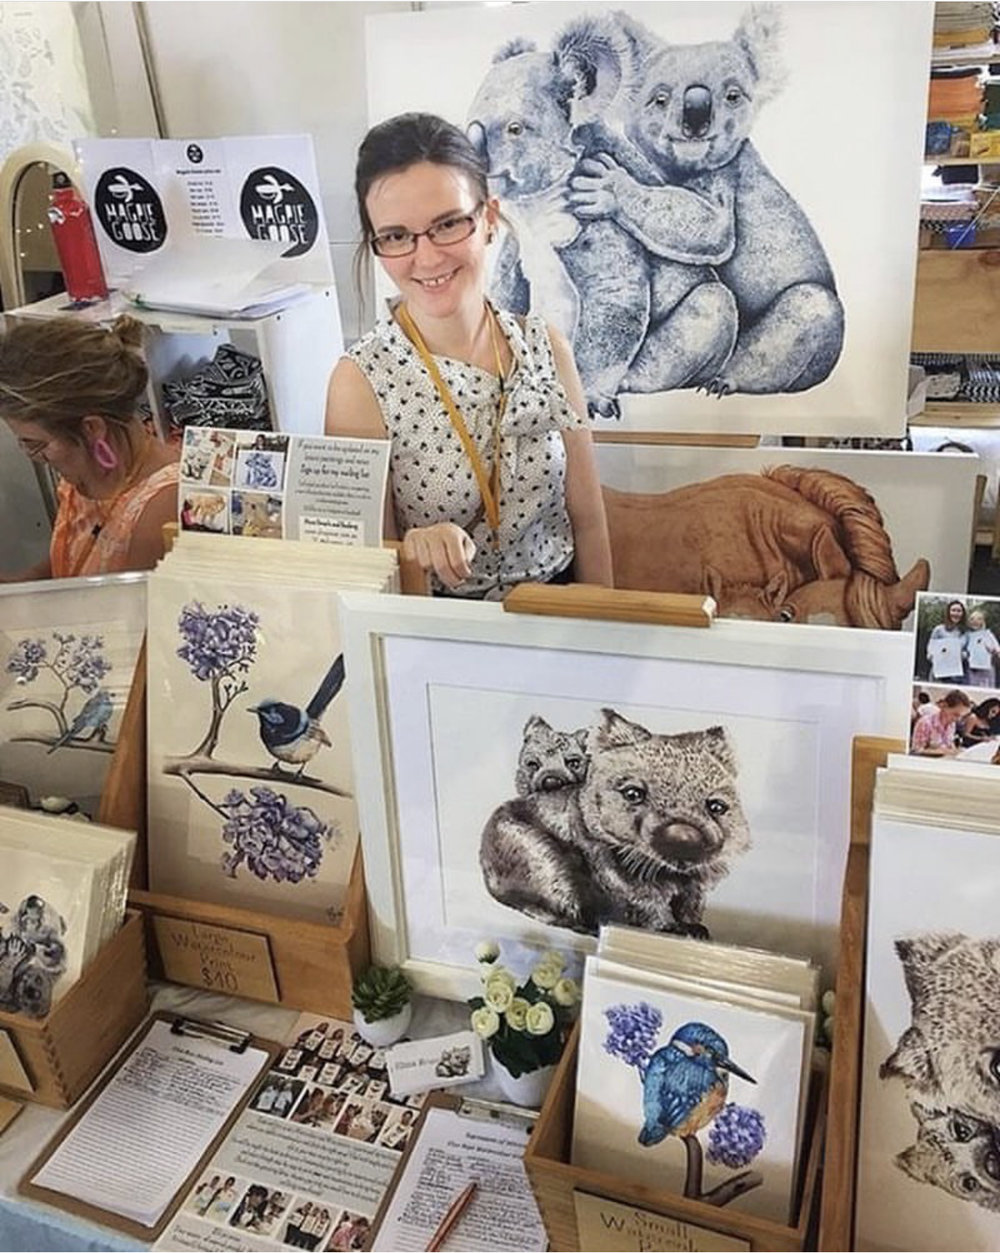 Market Stall Setup 8 2017 (November) The Finders Keepers.jpg